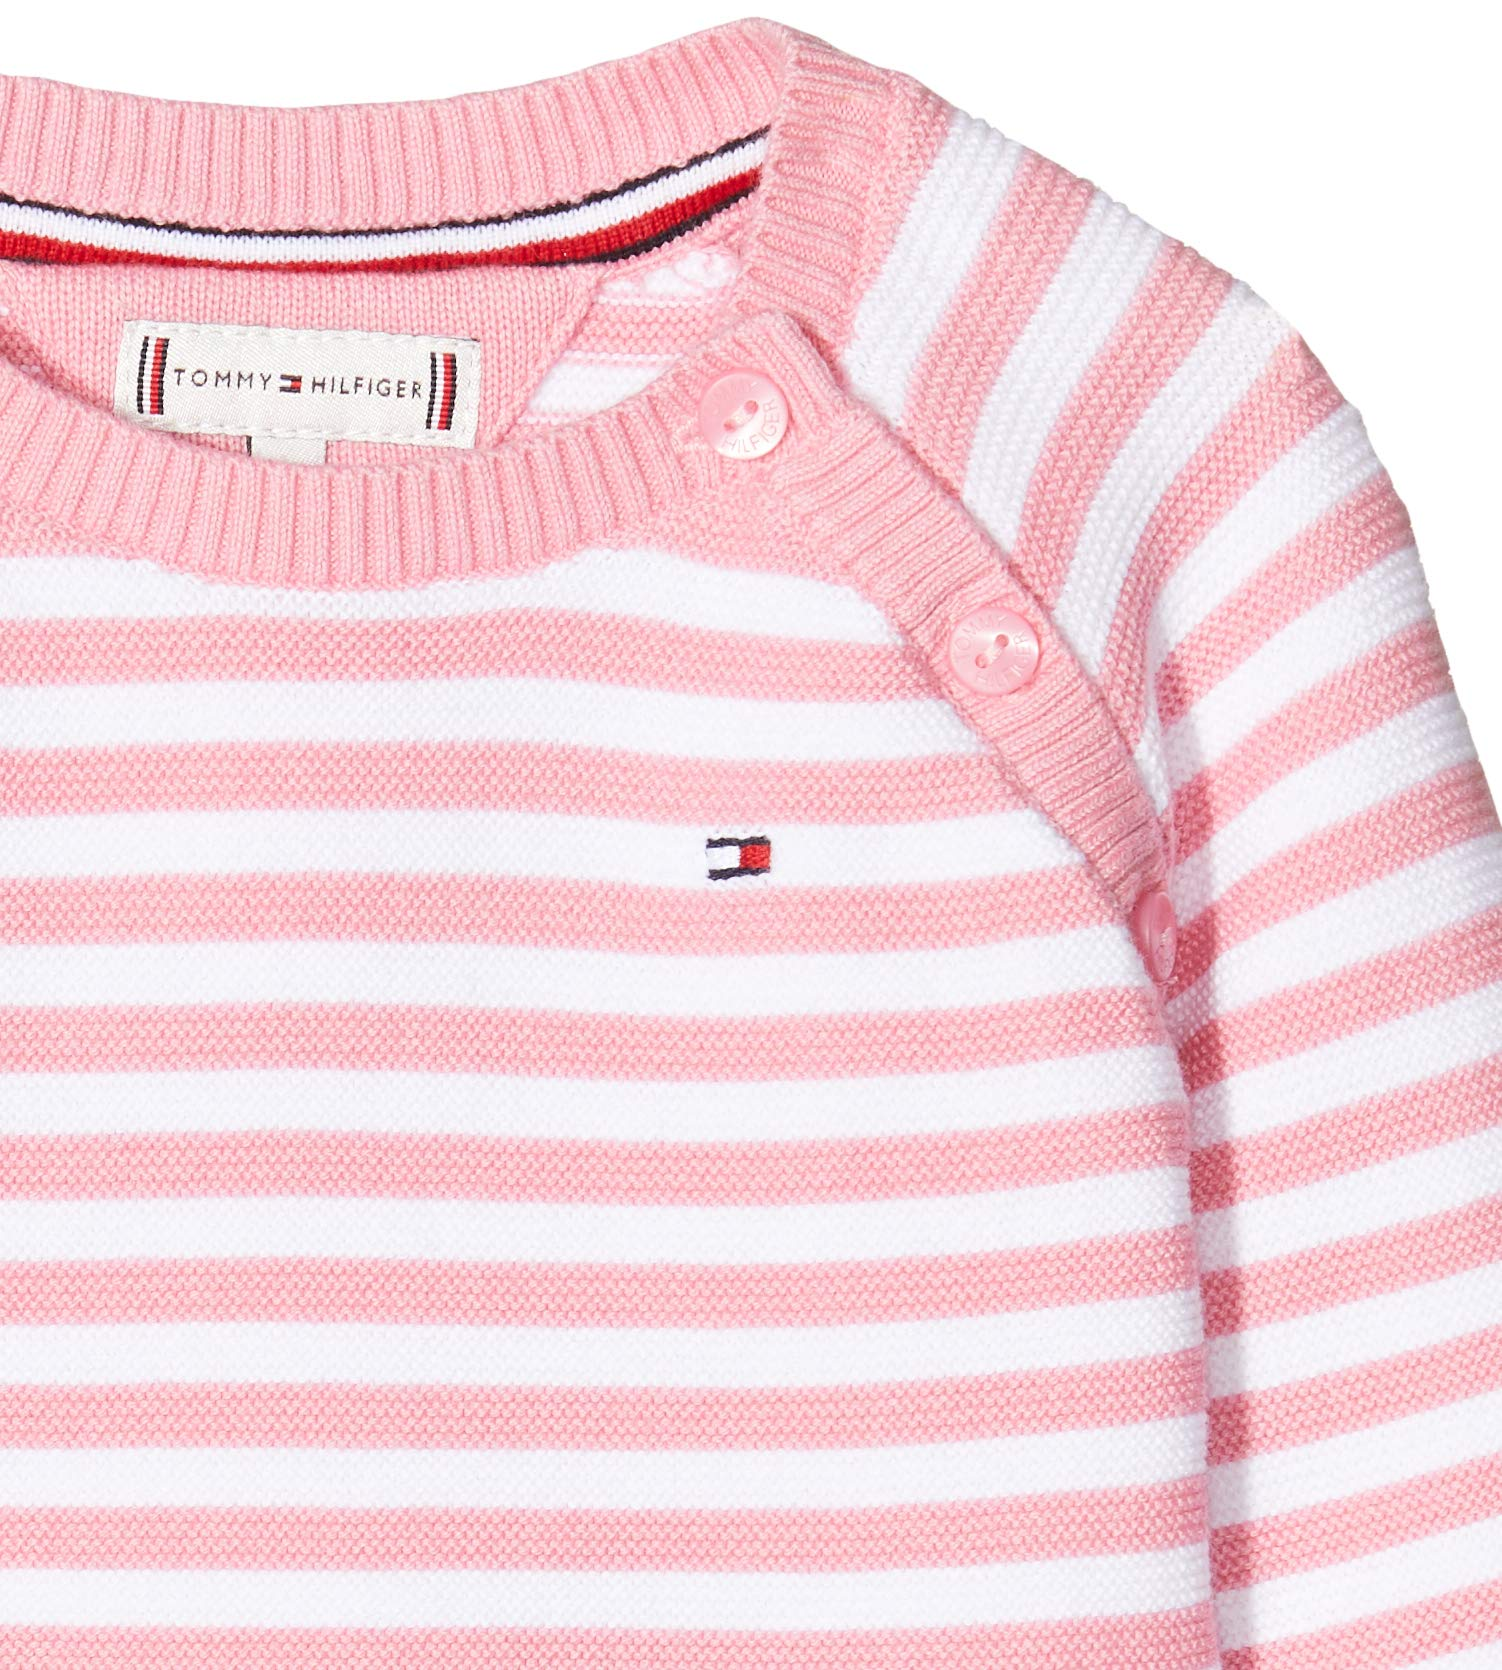 Tommy Hilfiger Baby Stripe Knitted Giftbox Sombrero para Bebés 2